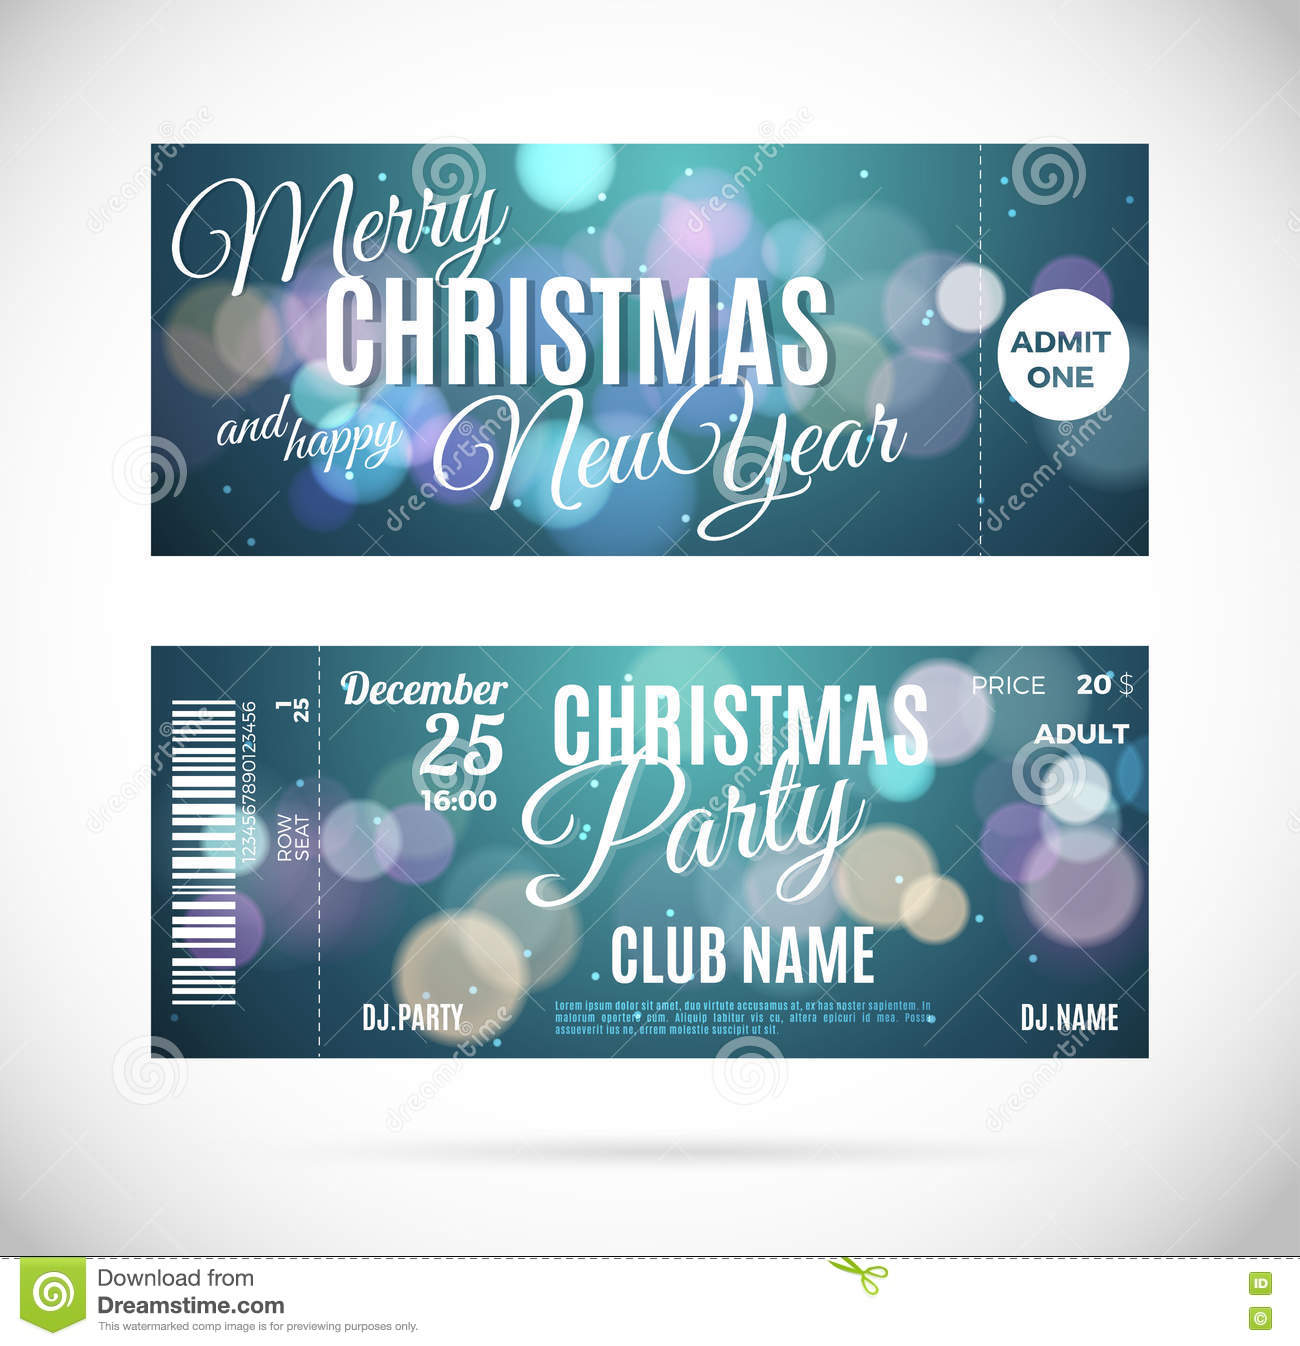 Christmas Party Ticket Template Free: Christmas Fly Air Ticket In Green Envelope Isolated Over